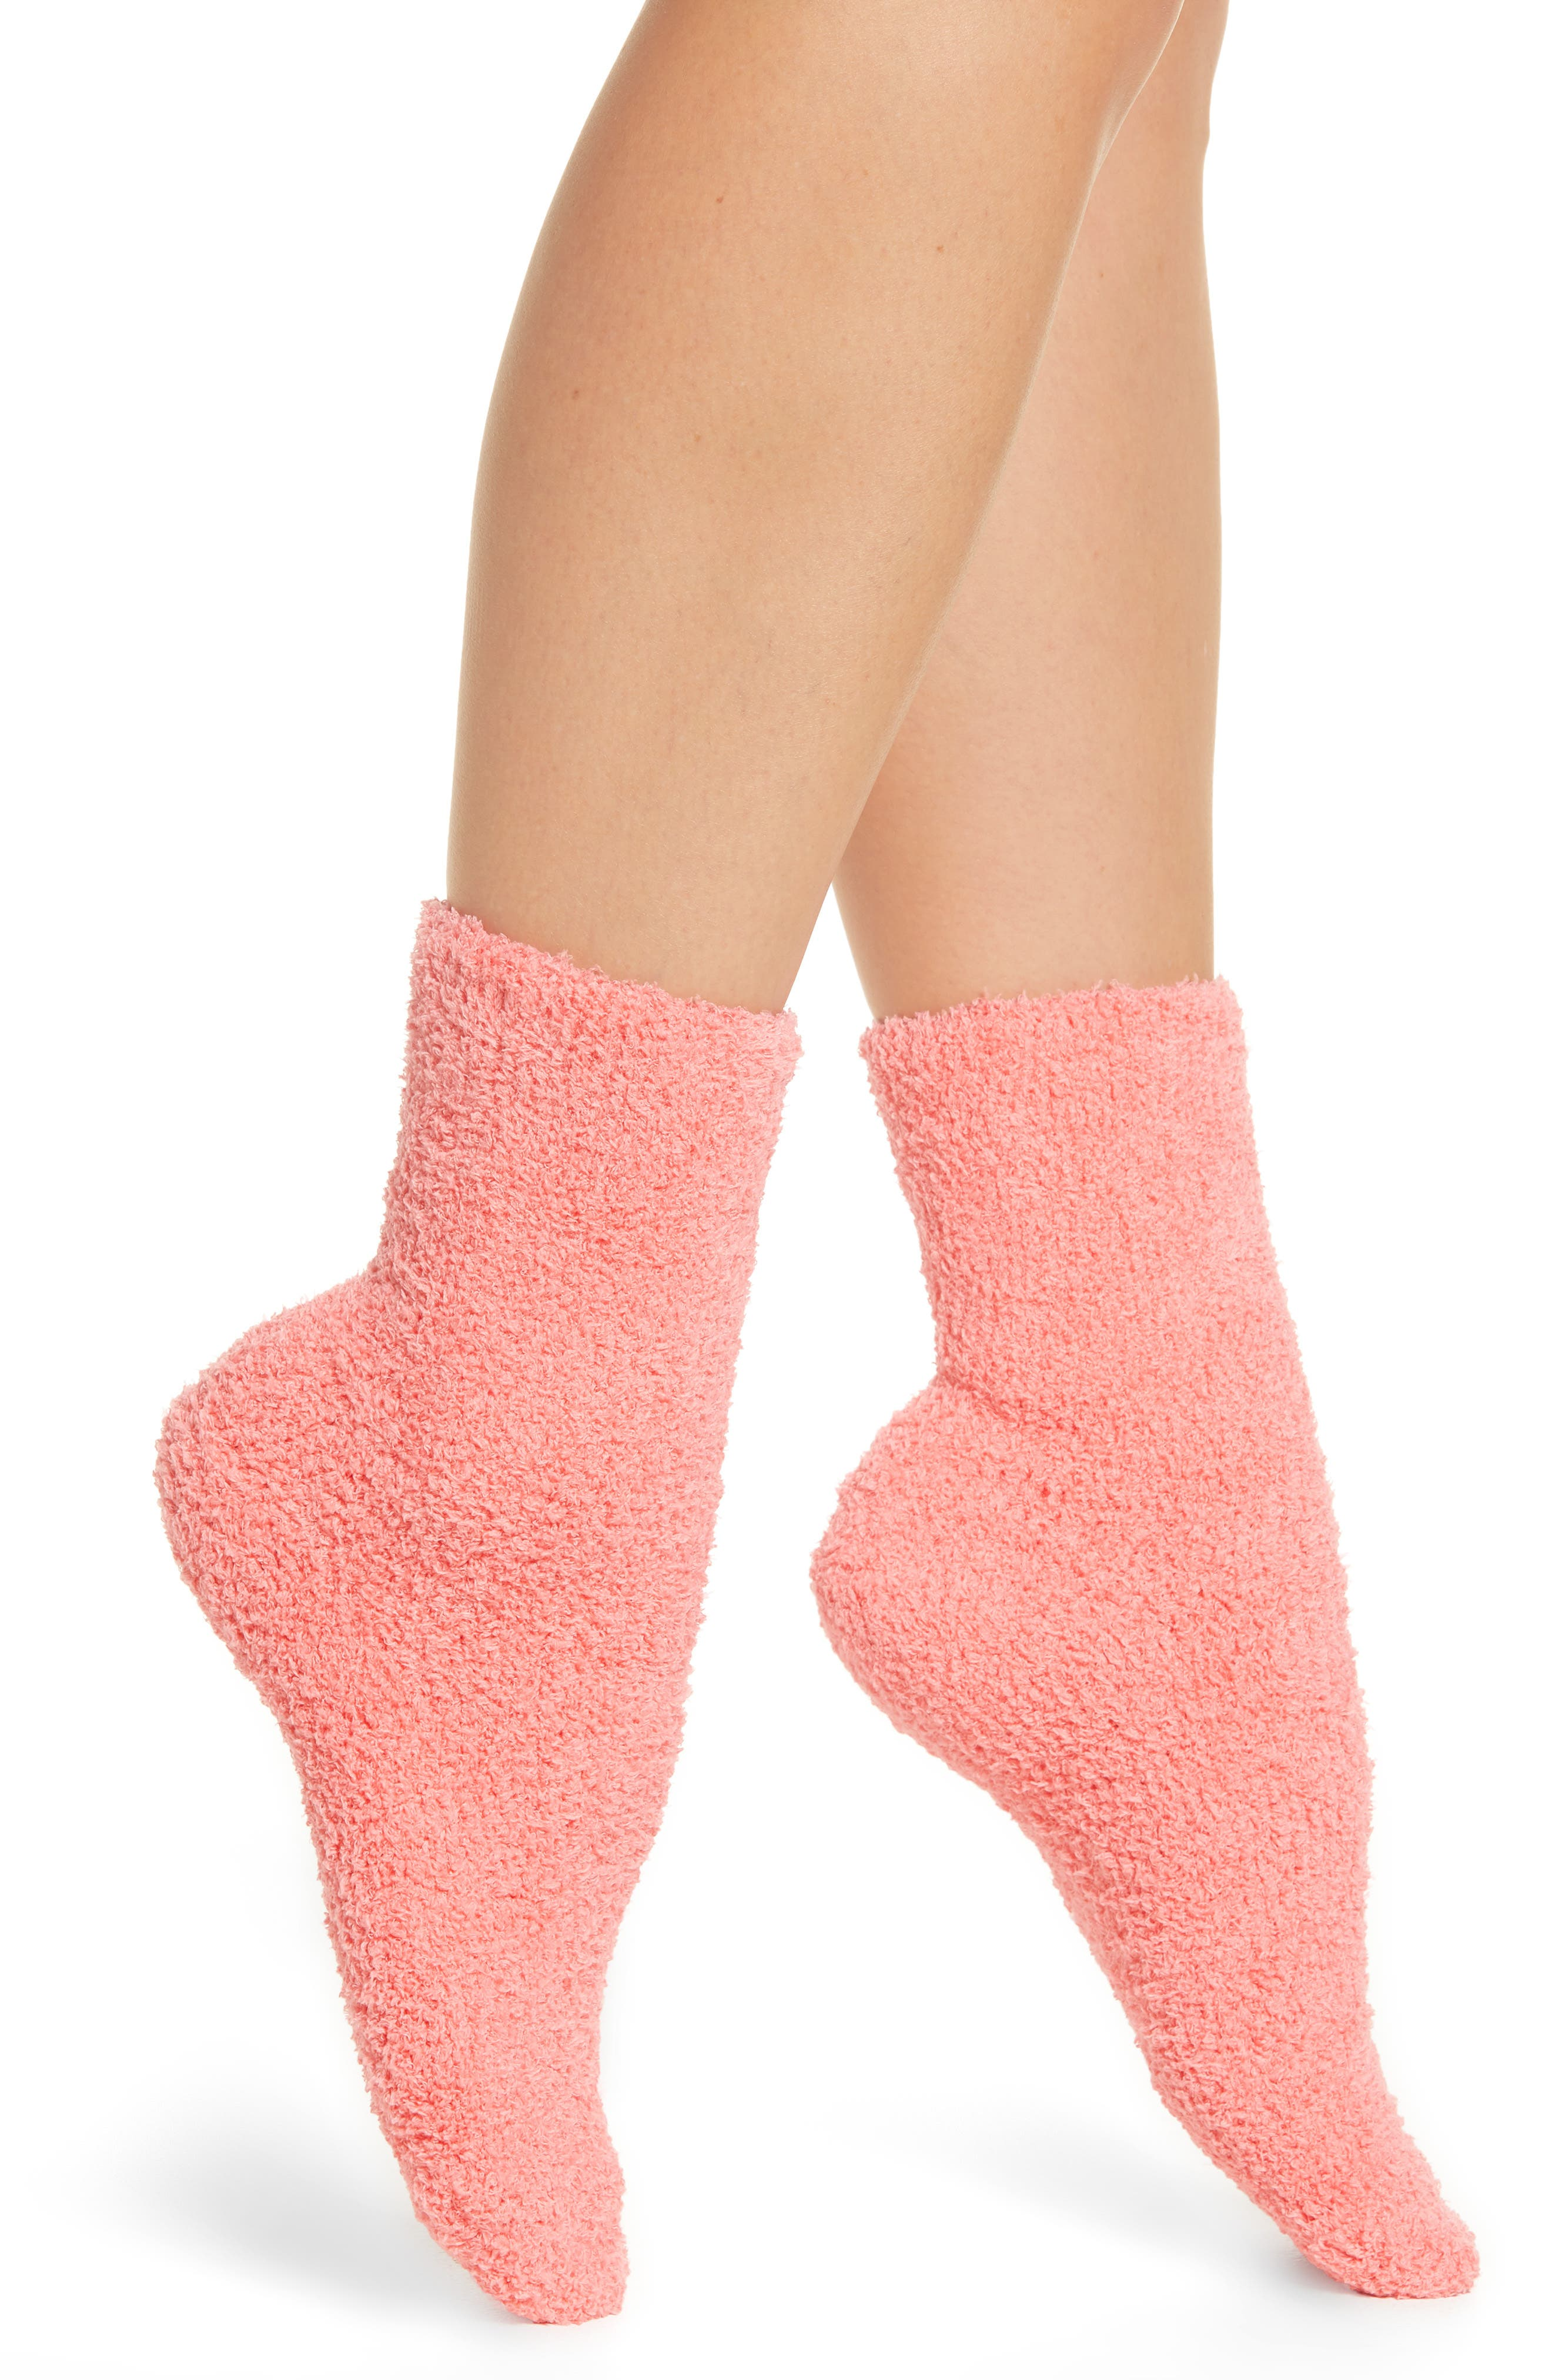 NORDSTROM,                             Butter Crew Socks,                             Main thumbnail 1, color,                             951